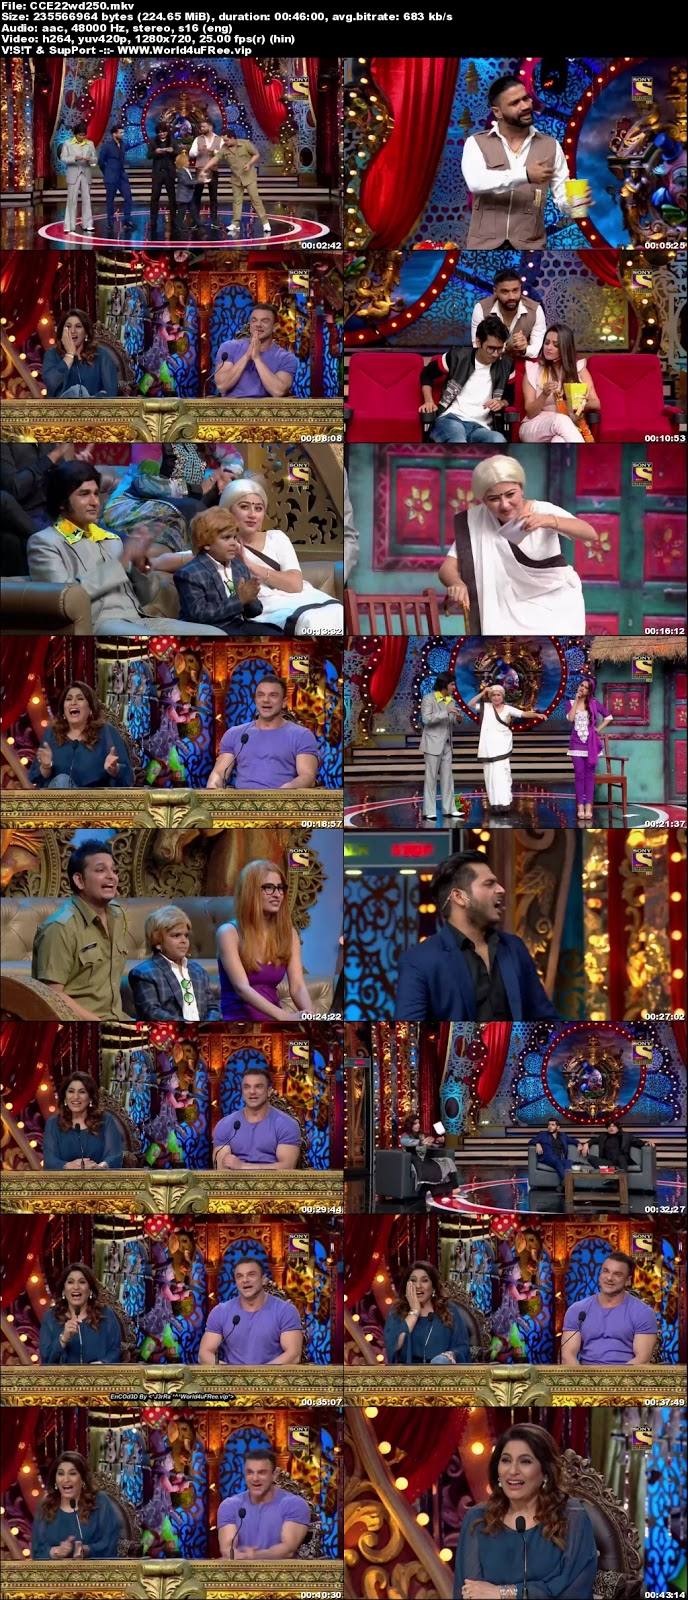 Comedy Circus 2018 Episode 22 720p WEBRip 250mb x264 world4ufree.fun tv show Comedy Circus 2018 hindi tv show Comedy Circus 2018 Season 1 sony tv show compressed small size free download or watch online at world4ufree.fun